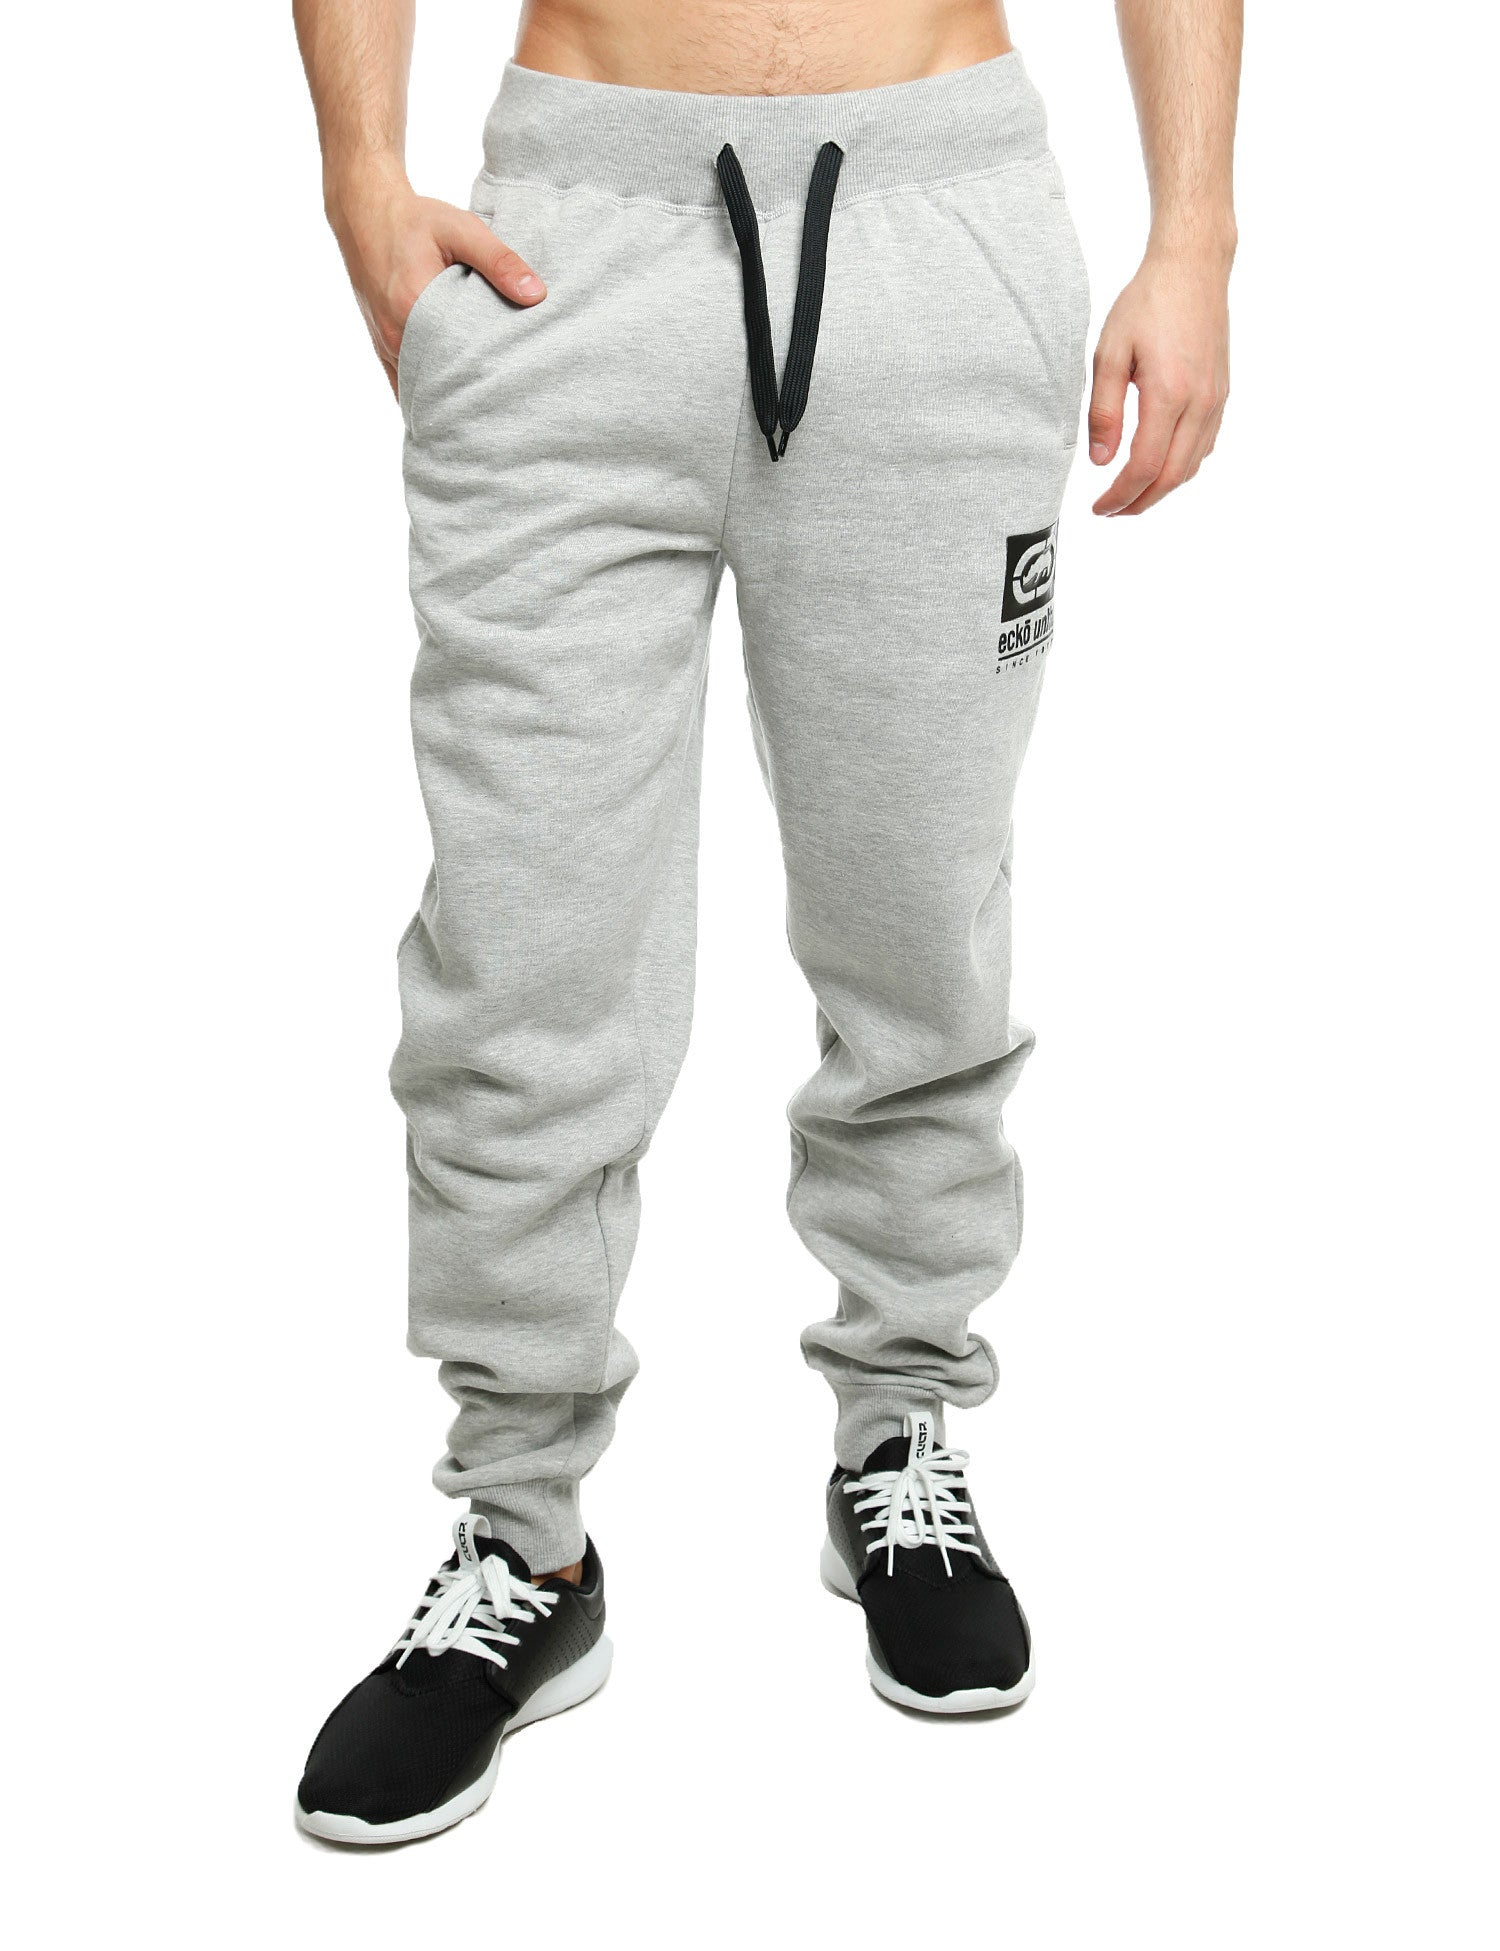 Image of Ecko Sweatpants Barking Grey